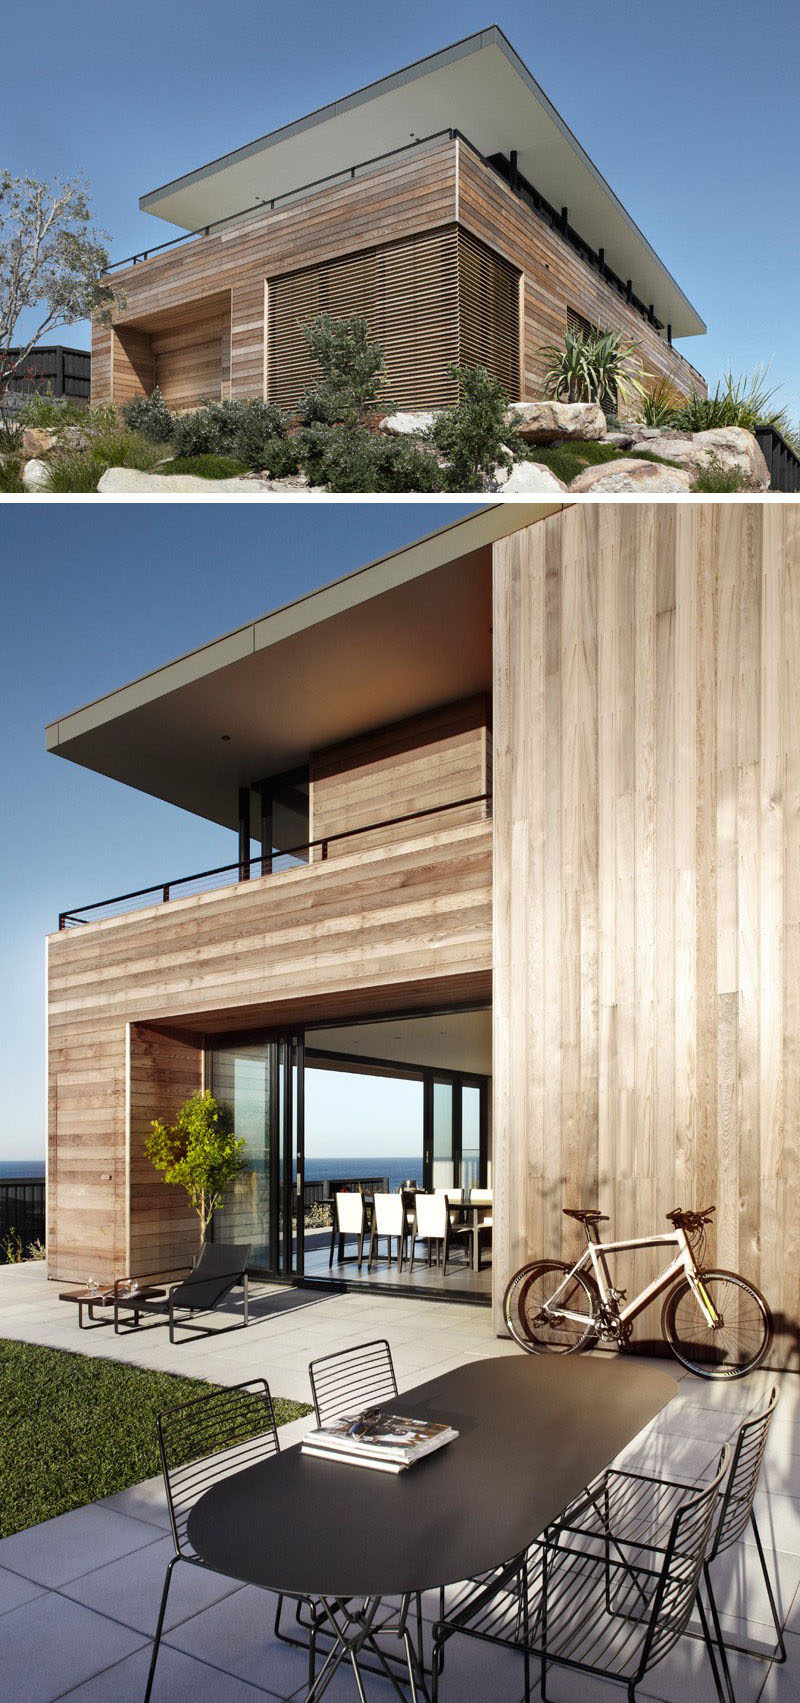 14 examples of modern beach houses from around the world for Beach architecture design